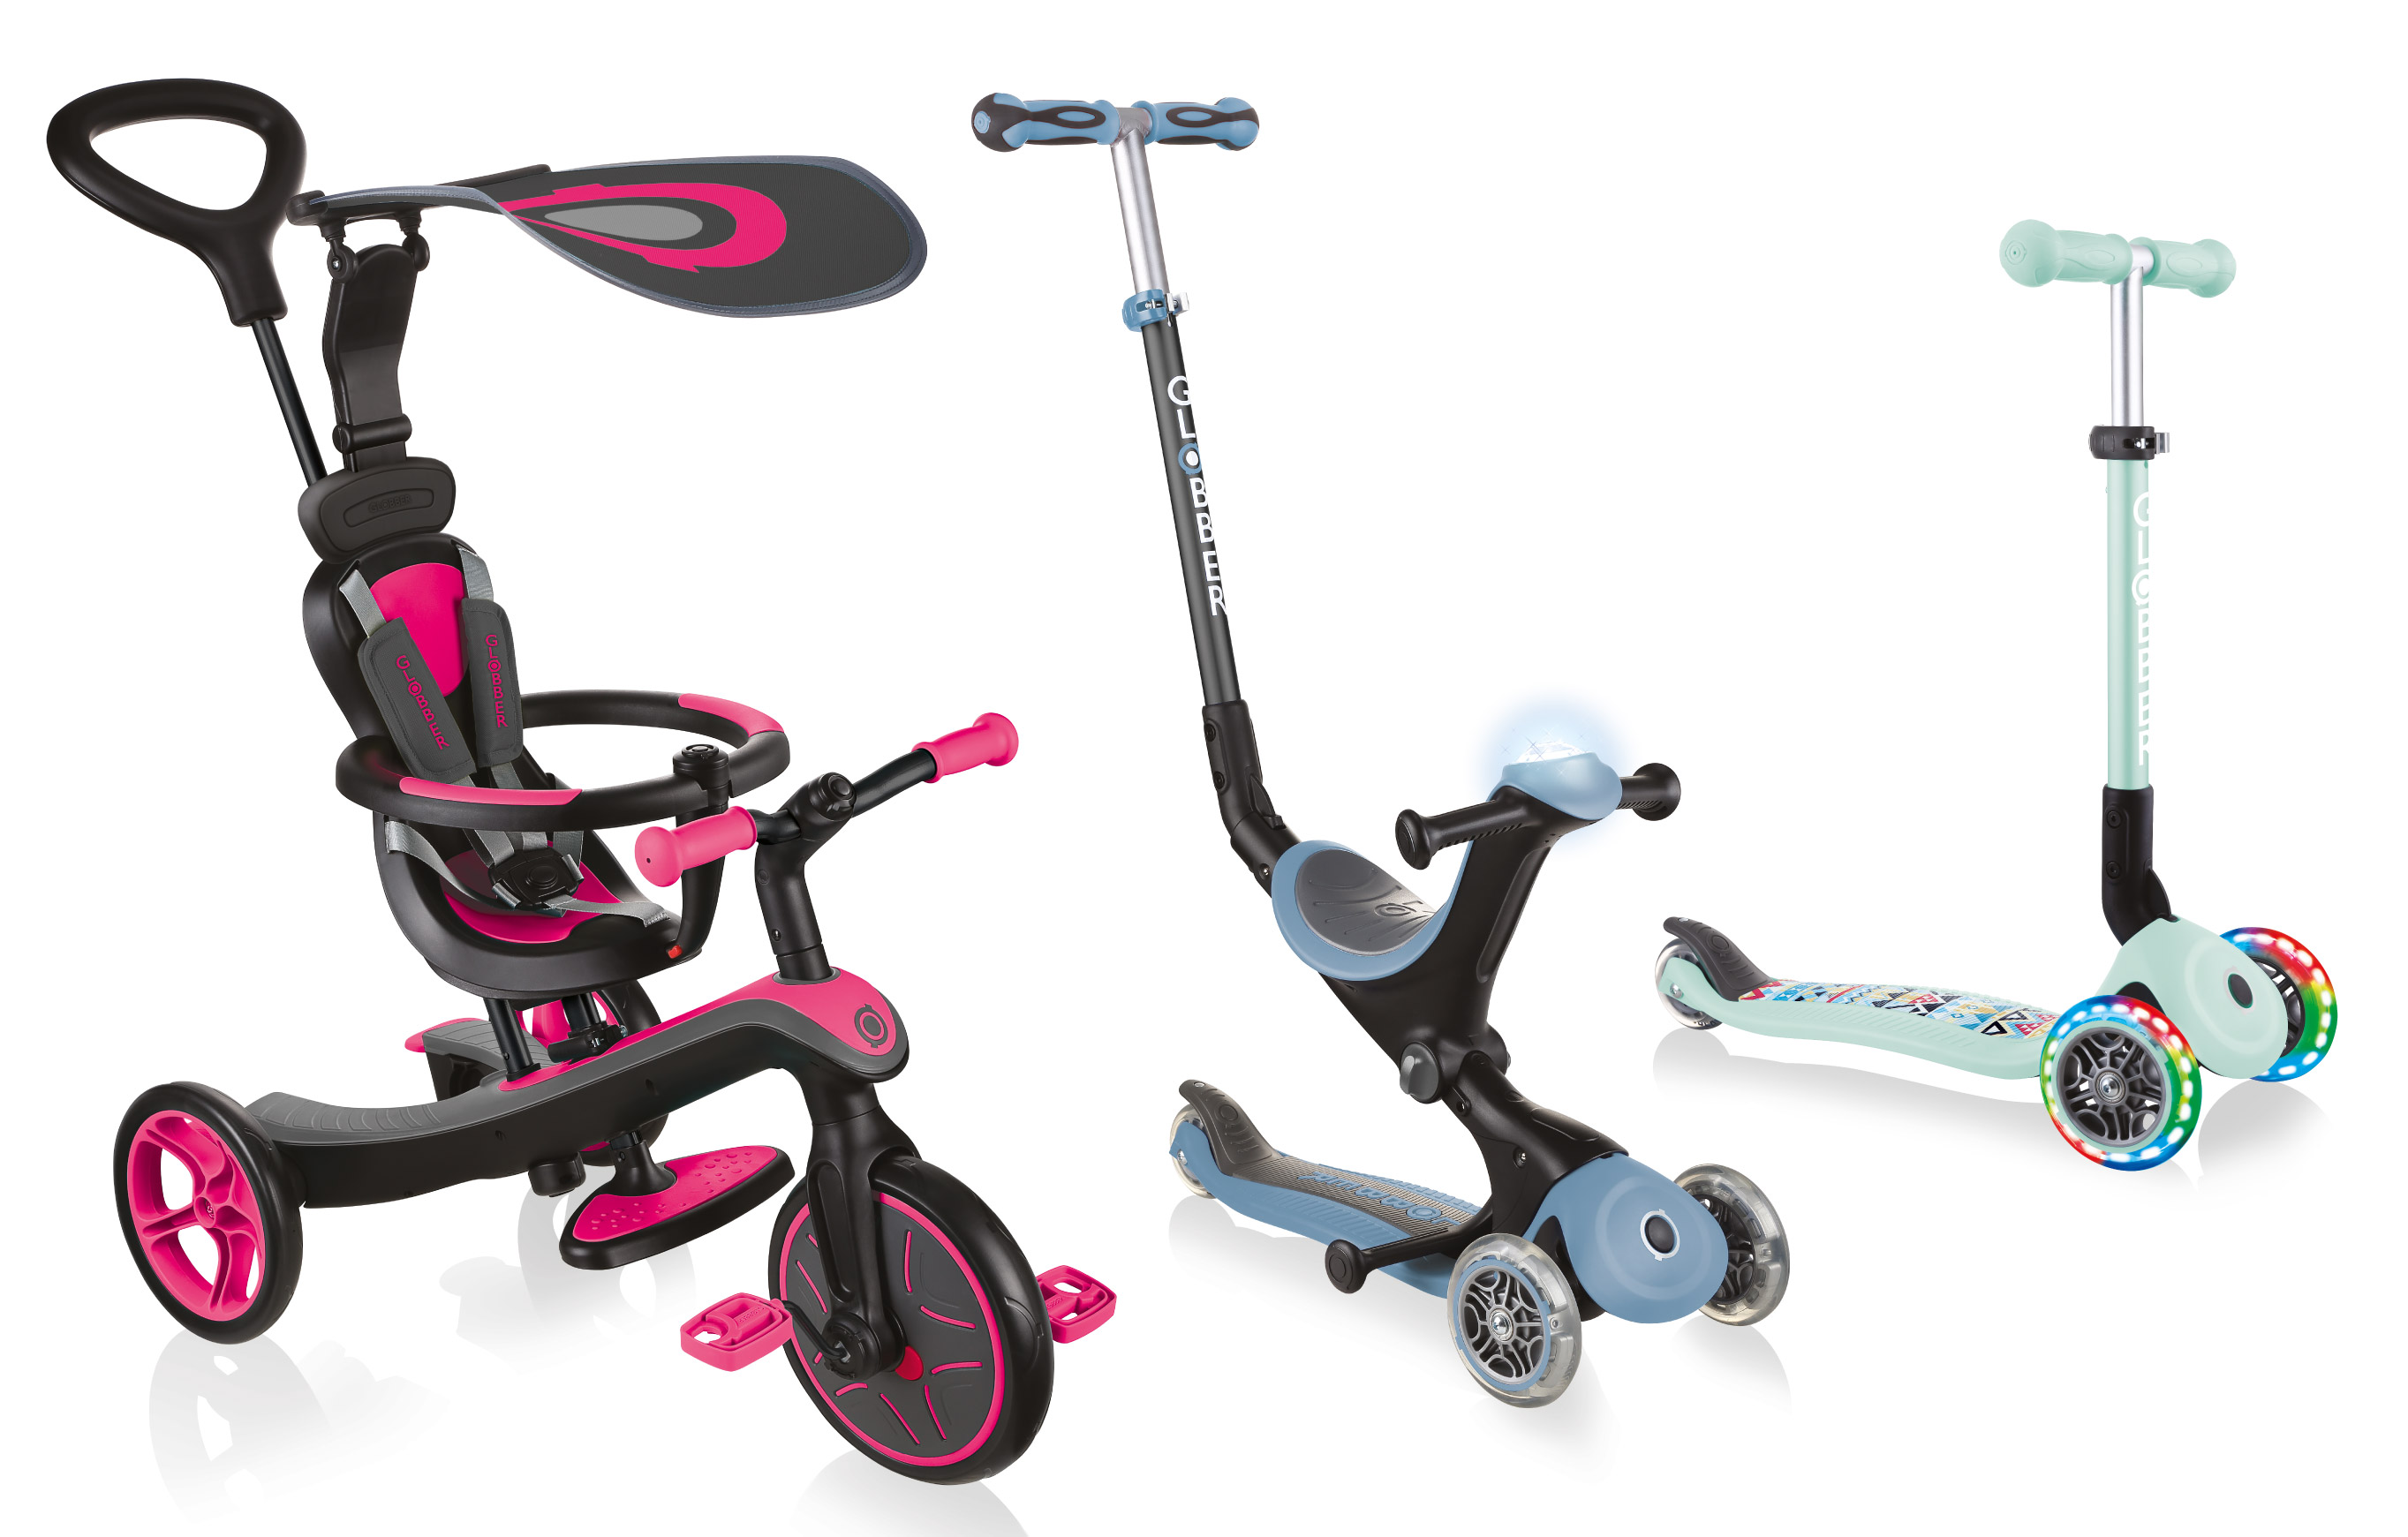 3-wheel scooter, scooter with seat and tricycle for toddlers